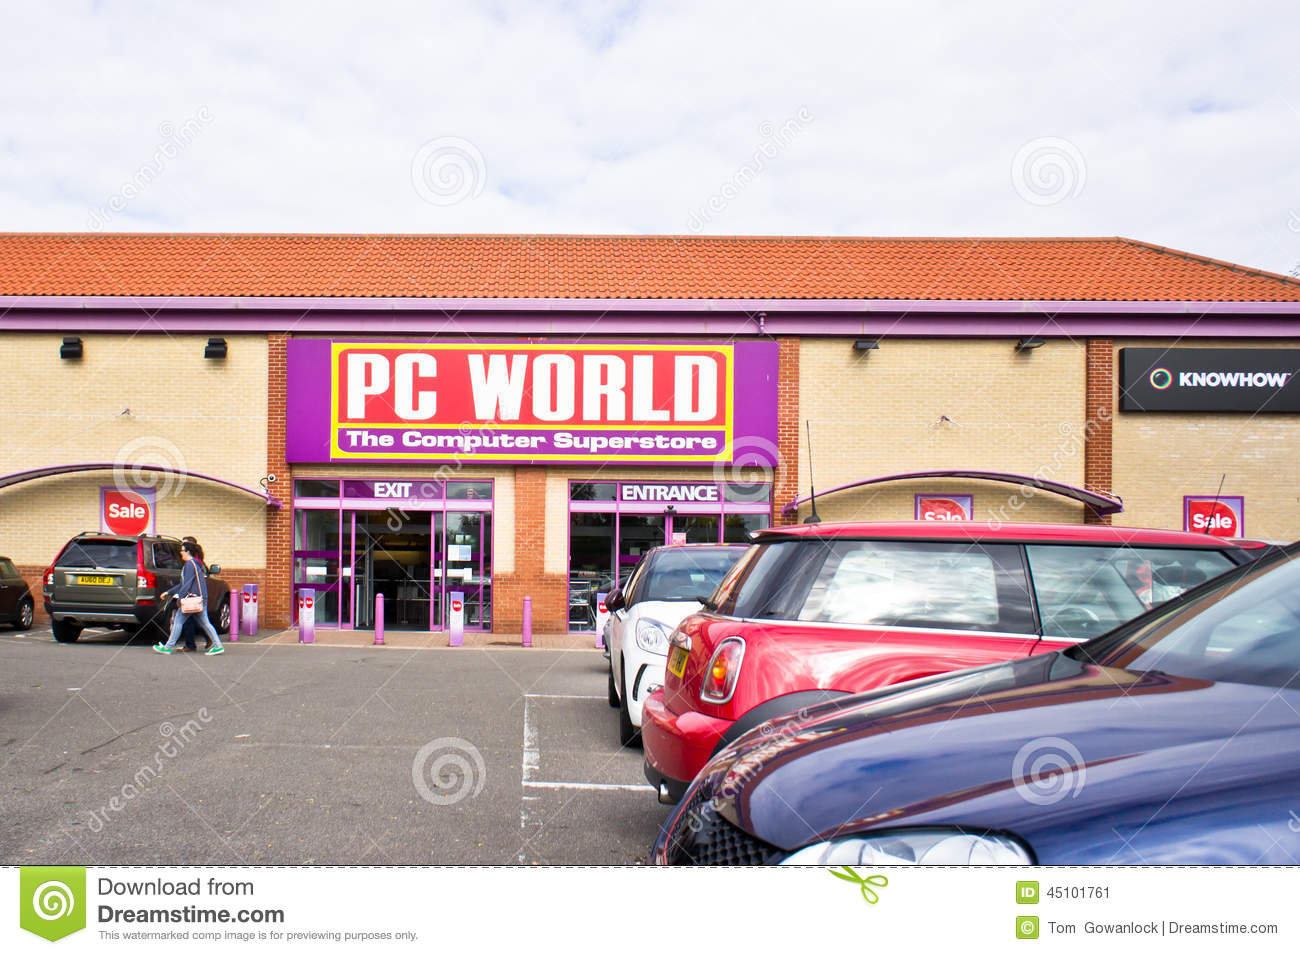 The uk's largest computer retailer | pc world.